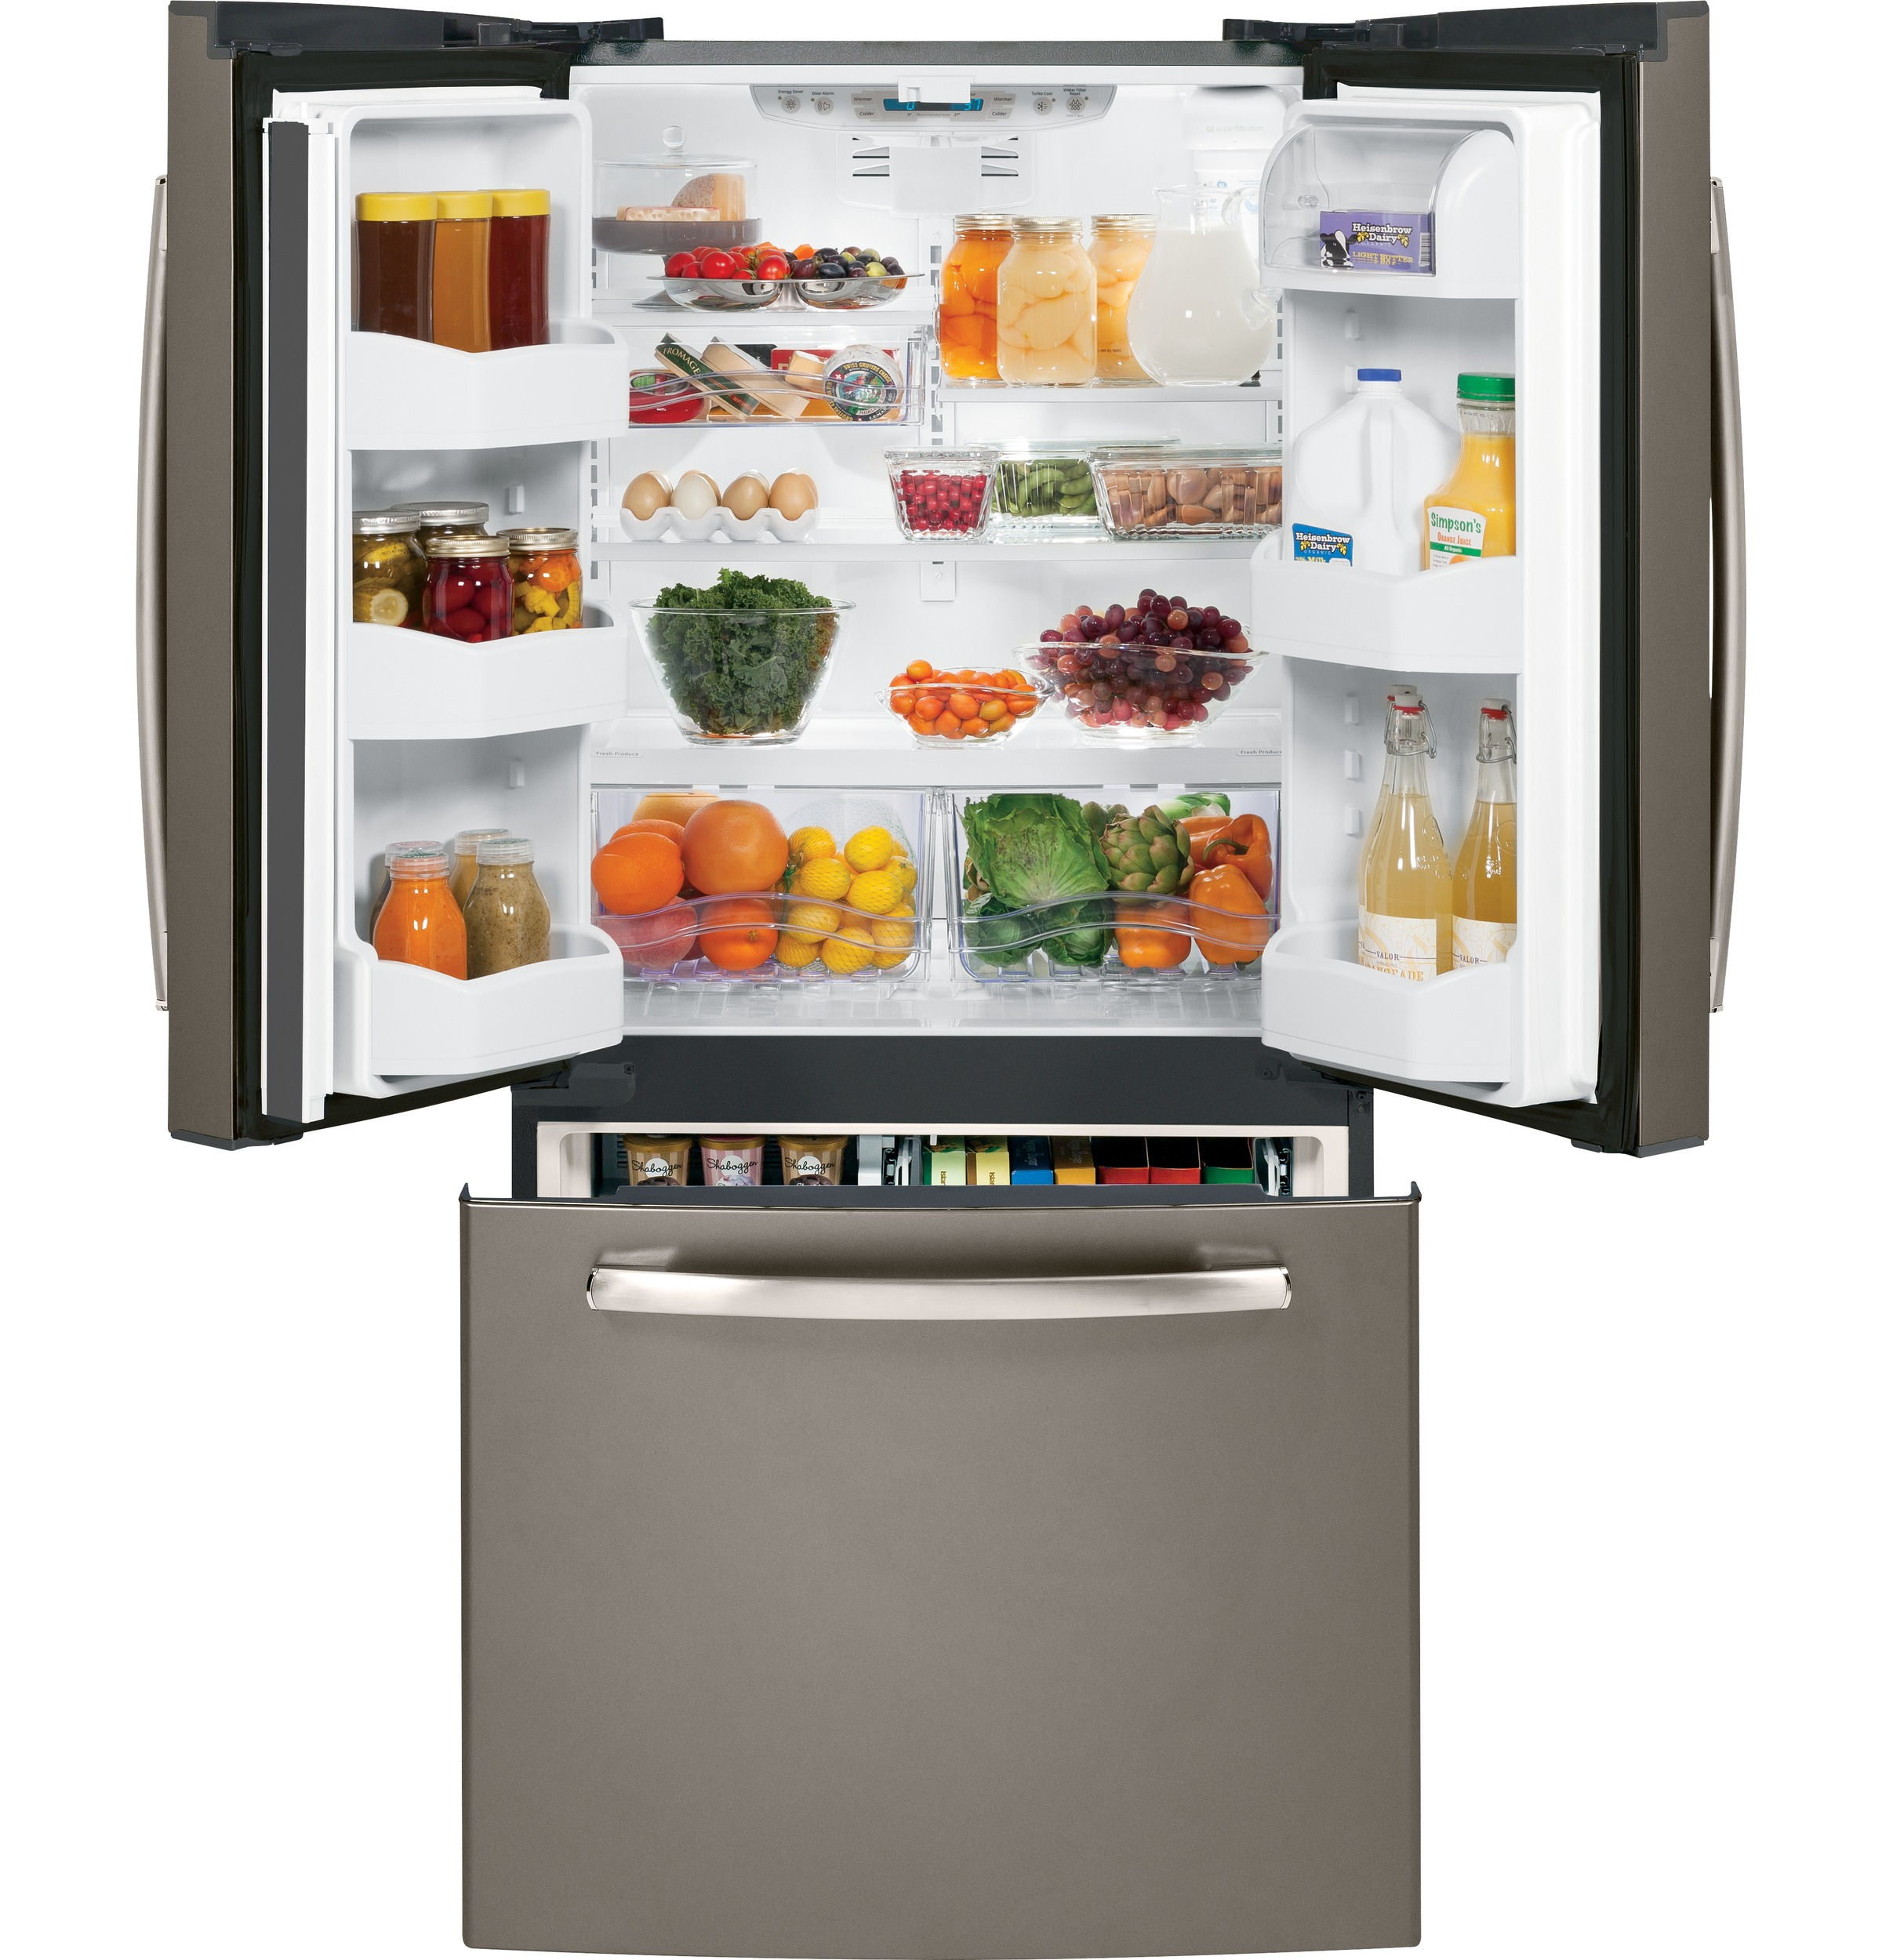 Free Picture Indoors Contemporary Stove Refrigerator: GE® 22.7 Cu. Ft. French-Door Refrigerator